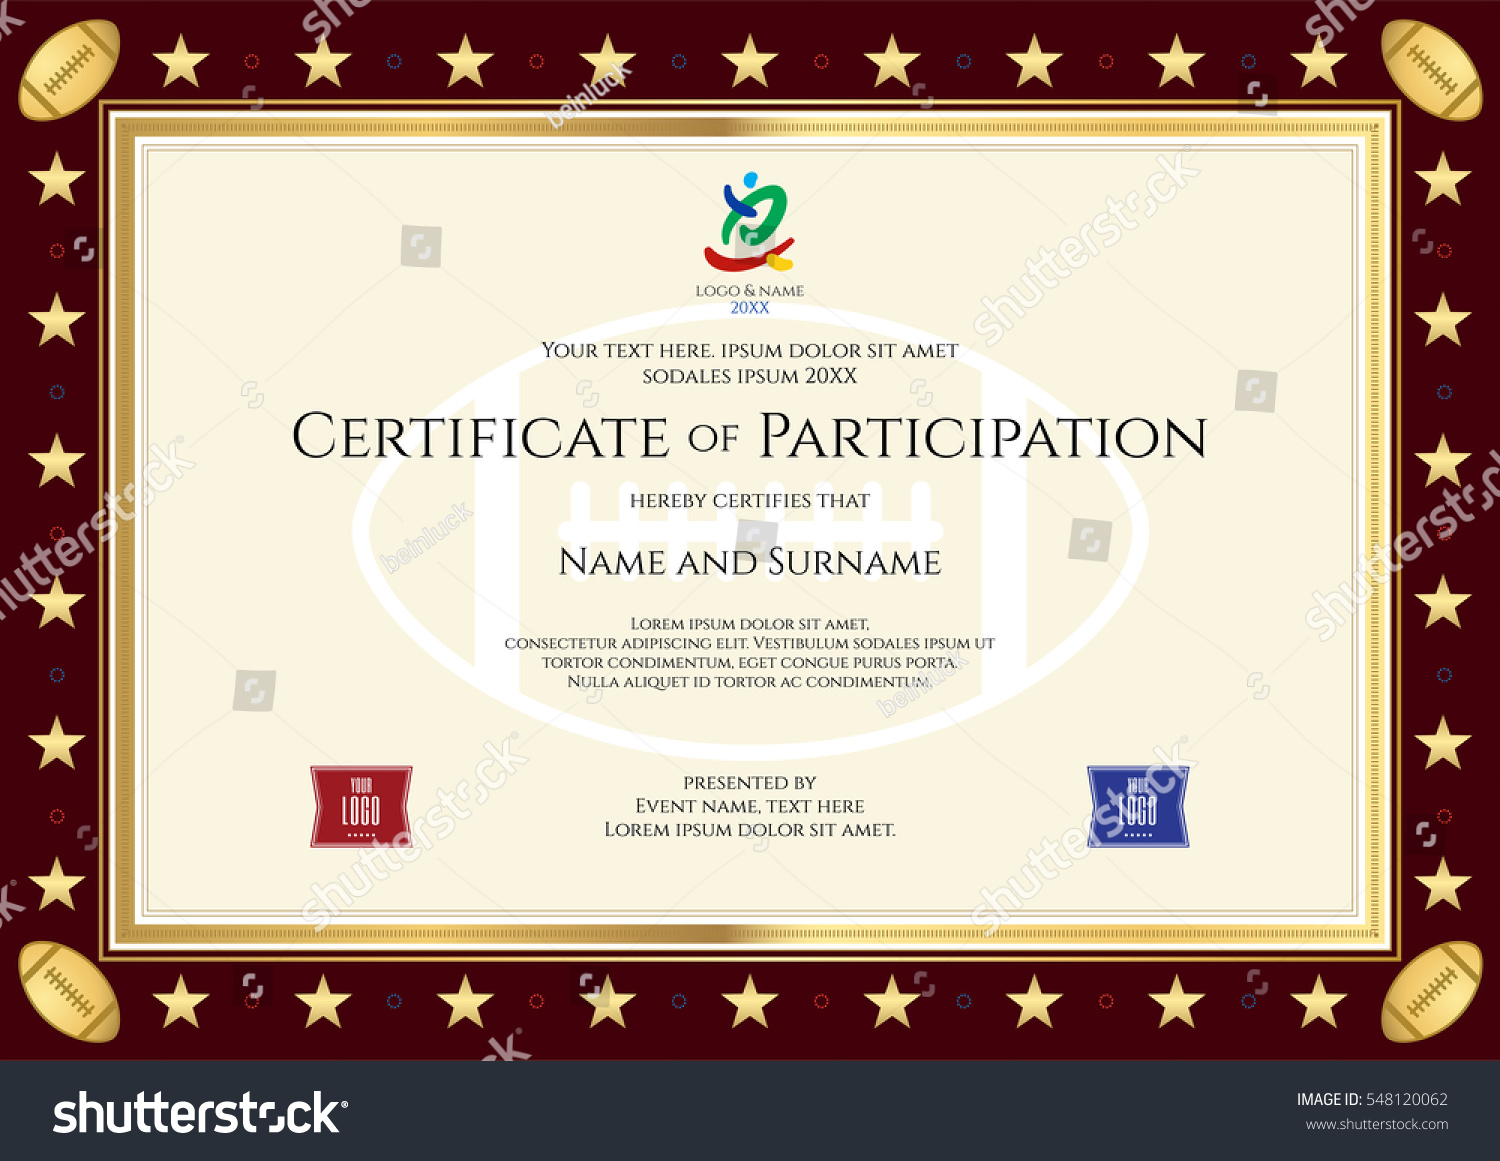 sport theme certification of participation template for sport or rugby event